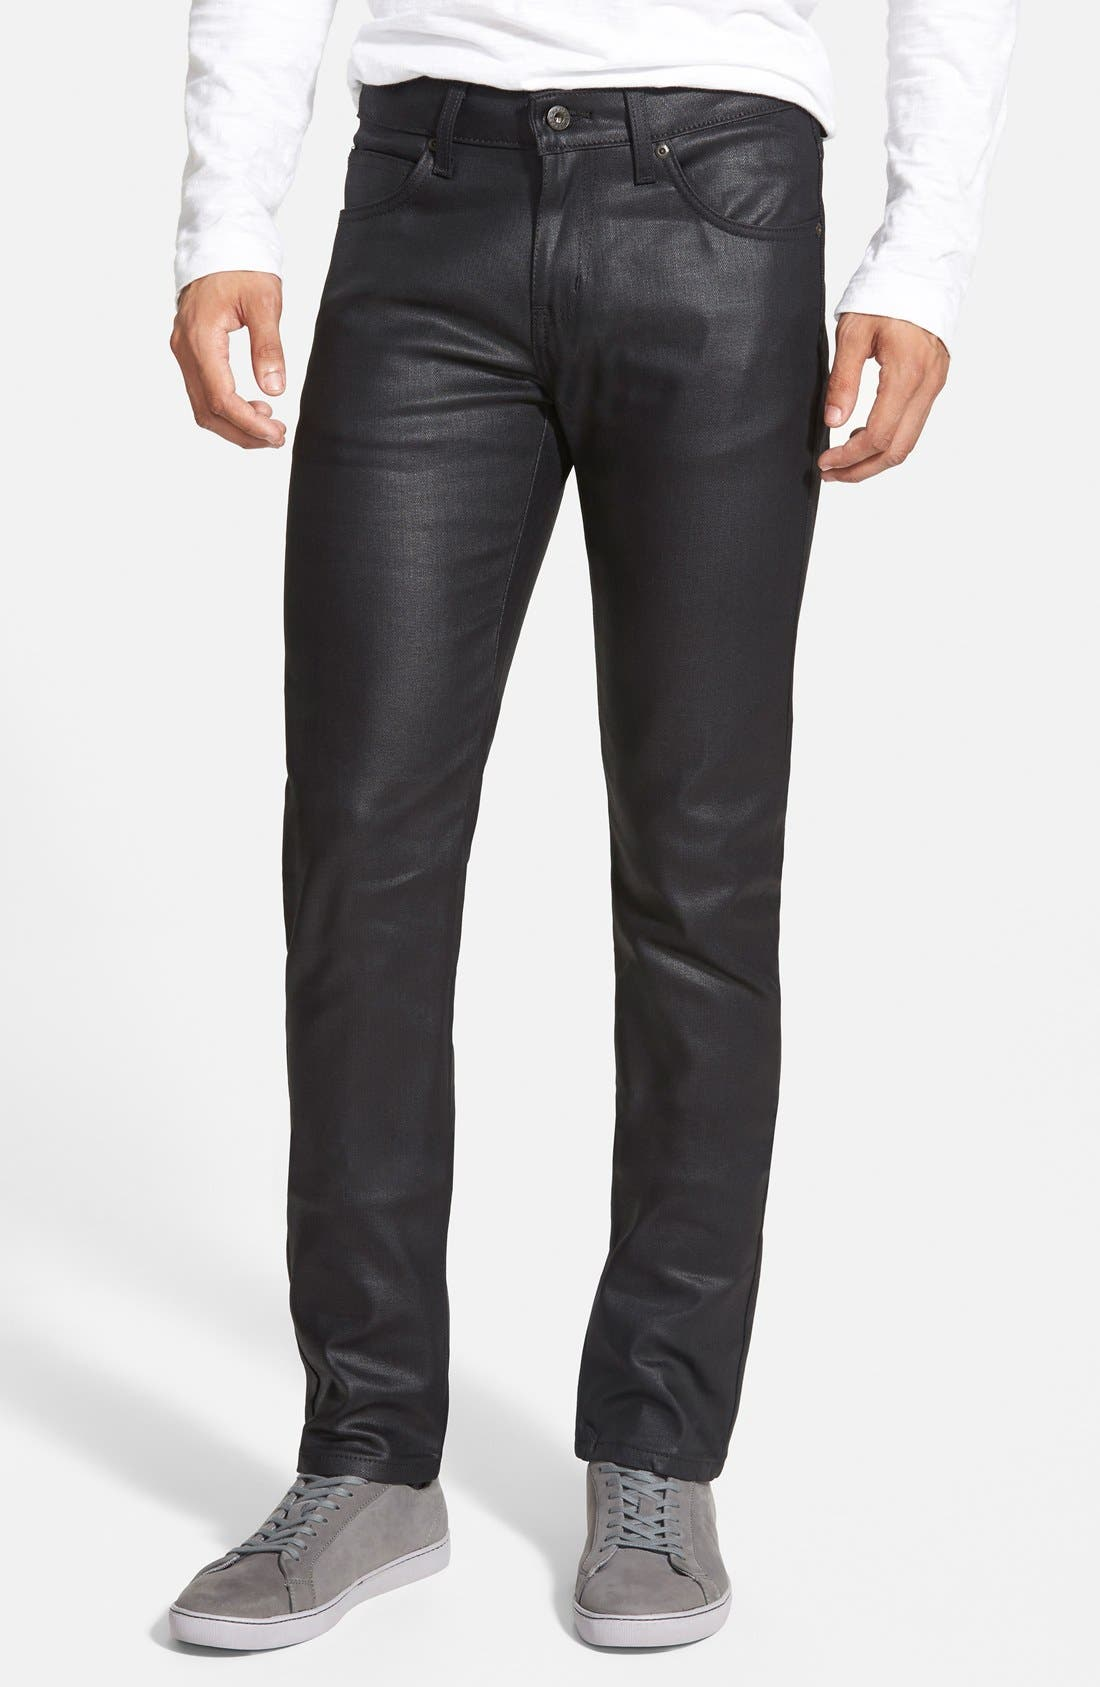 Alternate Image 1 Selected - Naked & Famous Denim Super Skinny Guy Skinny Stretch Jeans (Black)